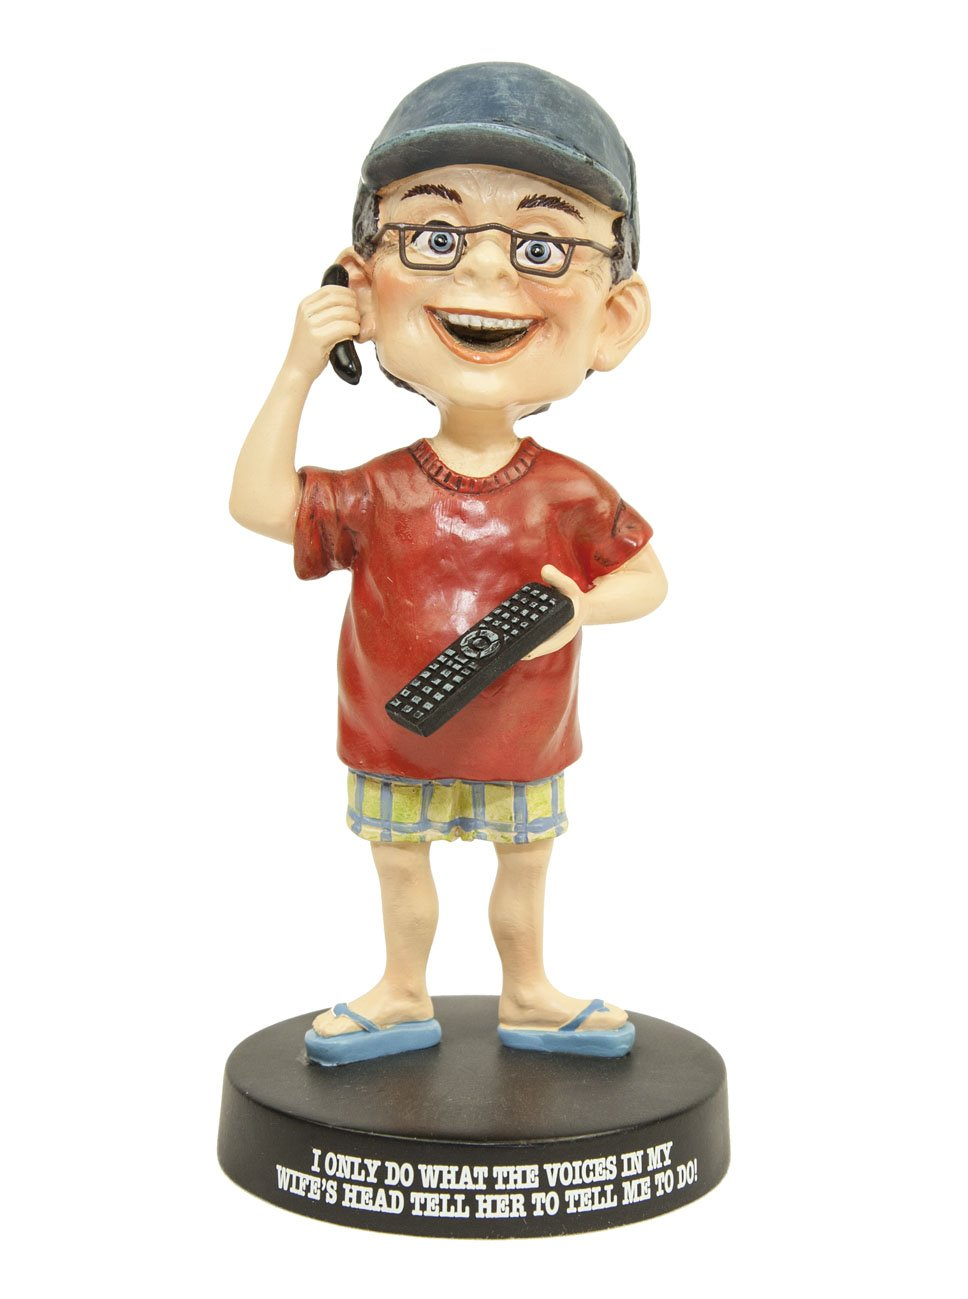 The Boomers Games On Statue Giftware Figurine 8387 Pacific Giftware